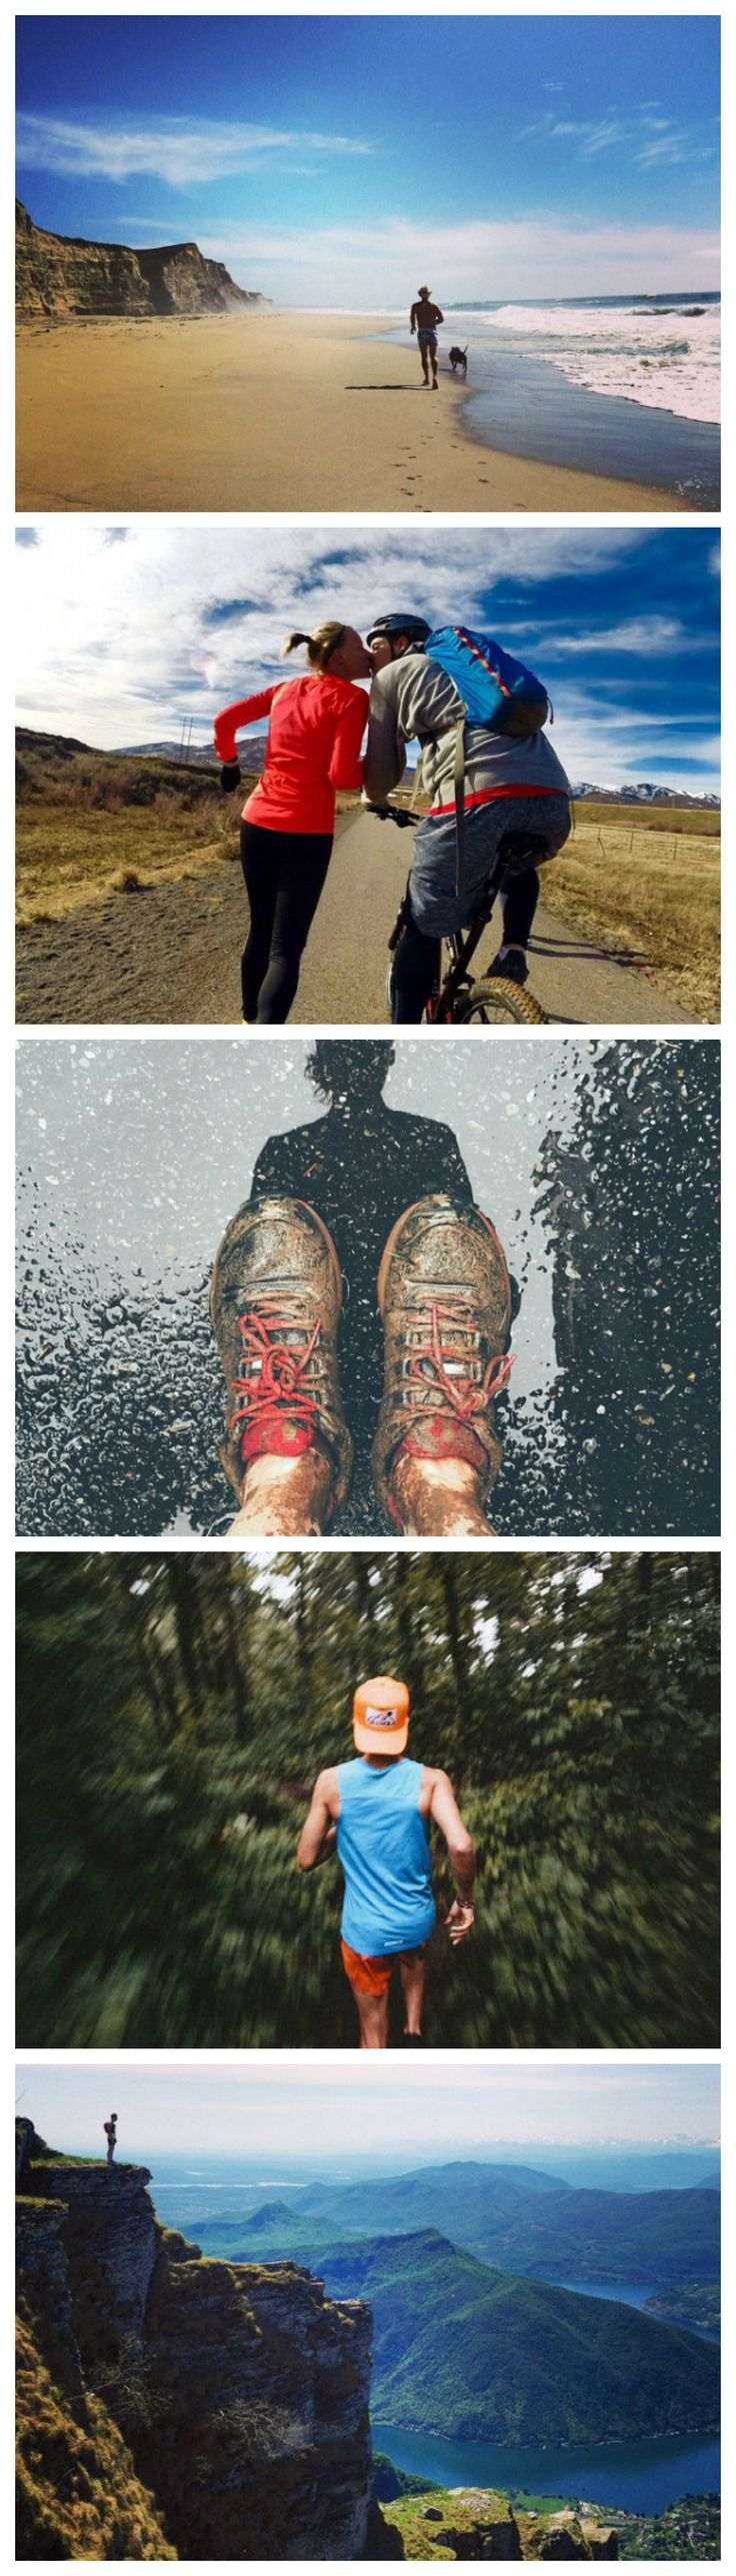 All runners need a reason to get out the door. It can be as simple as wanting to get dirty, tire out your dog, or see the best view—there's really no wrong way to get motivated.